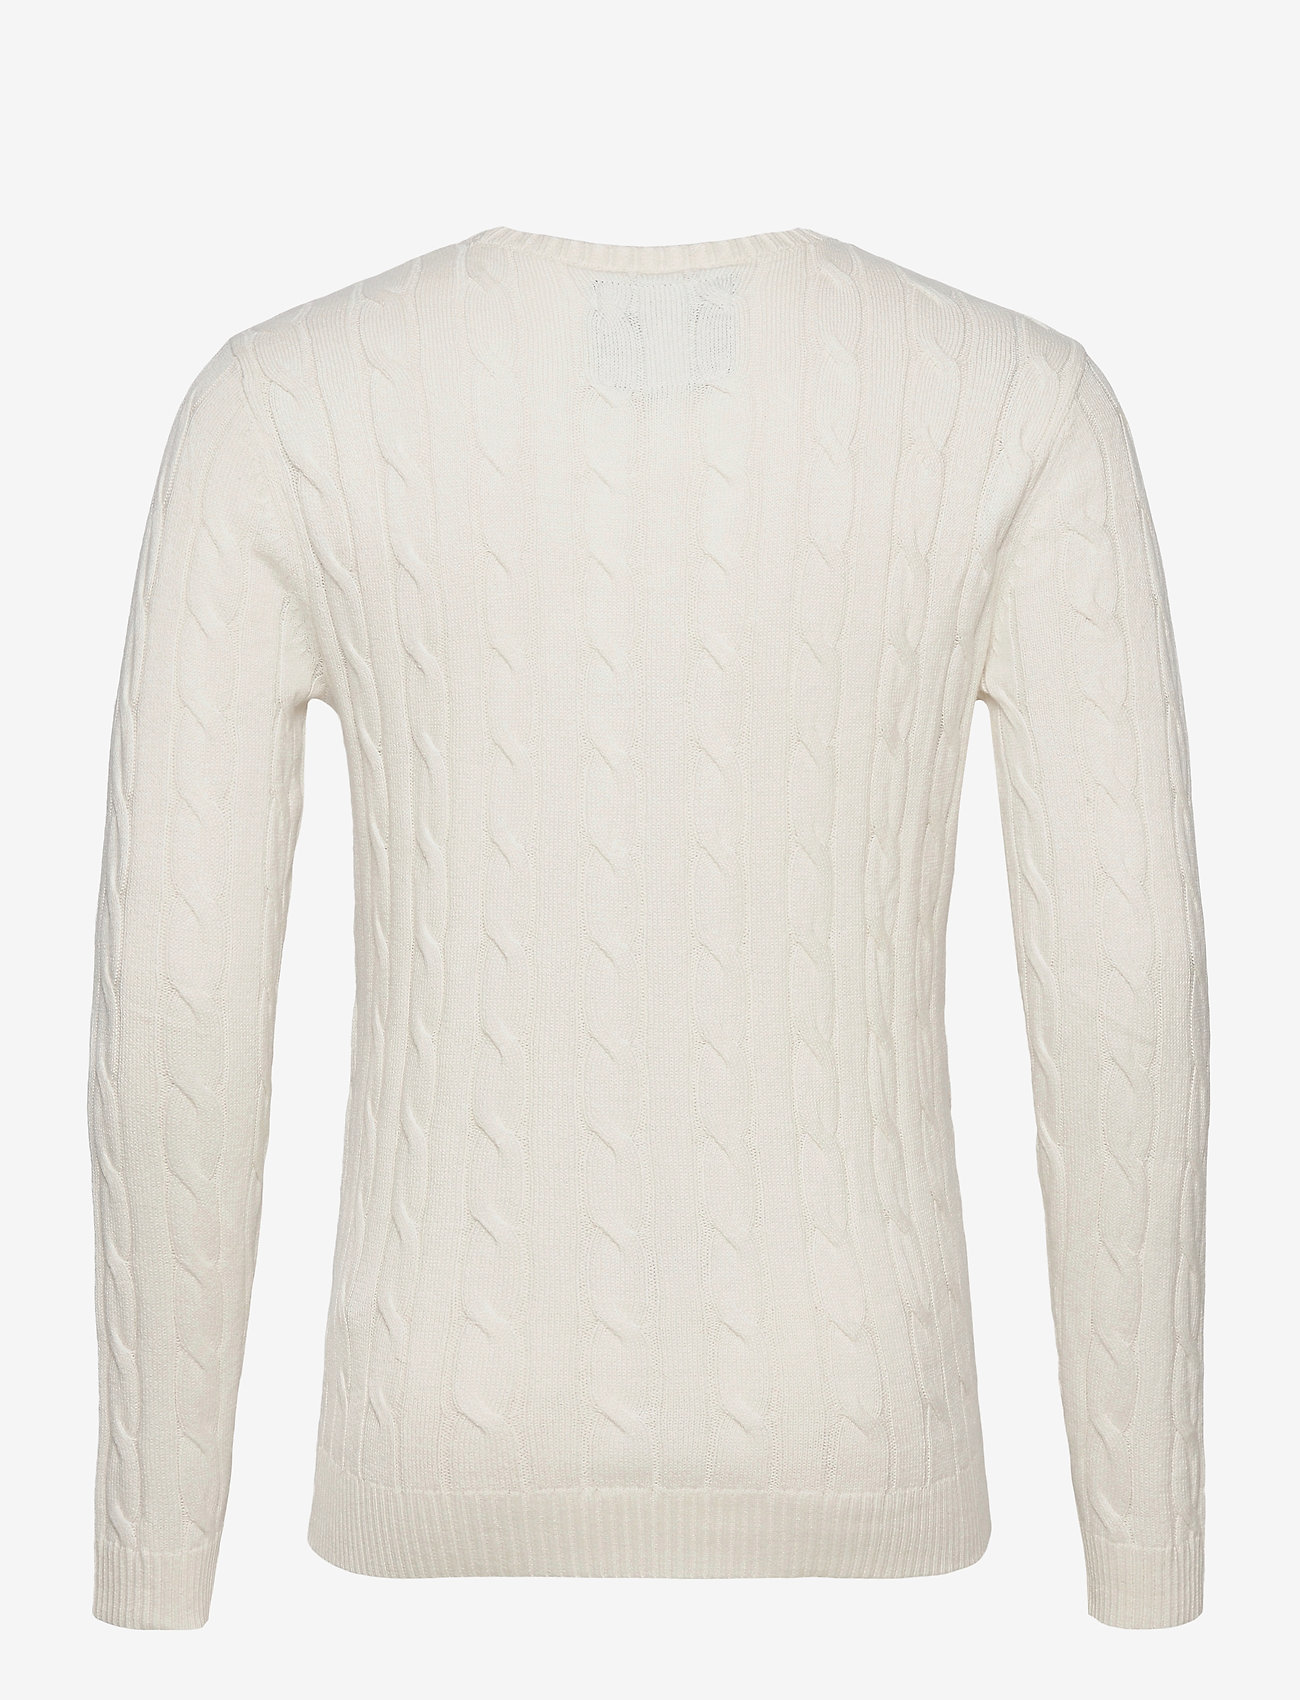 Hollister - HCo. GUYS SWEATERS - tricots basiques - cream - 1